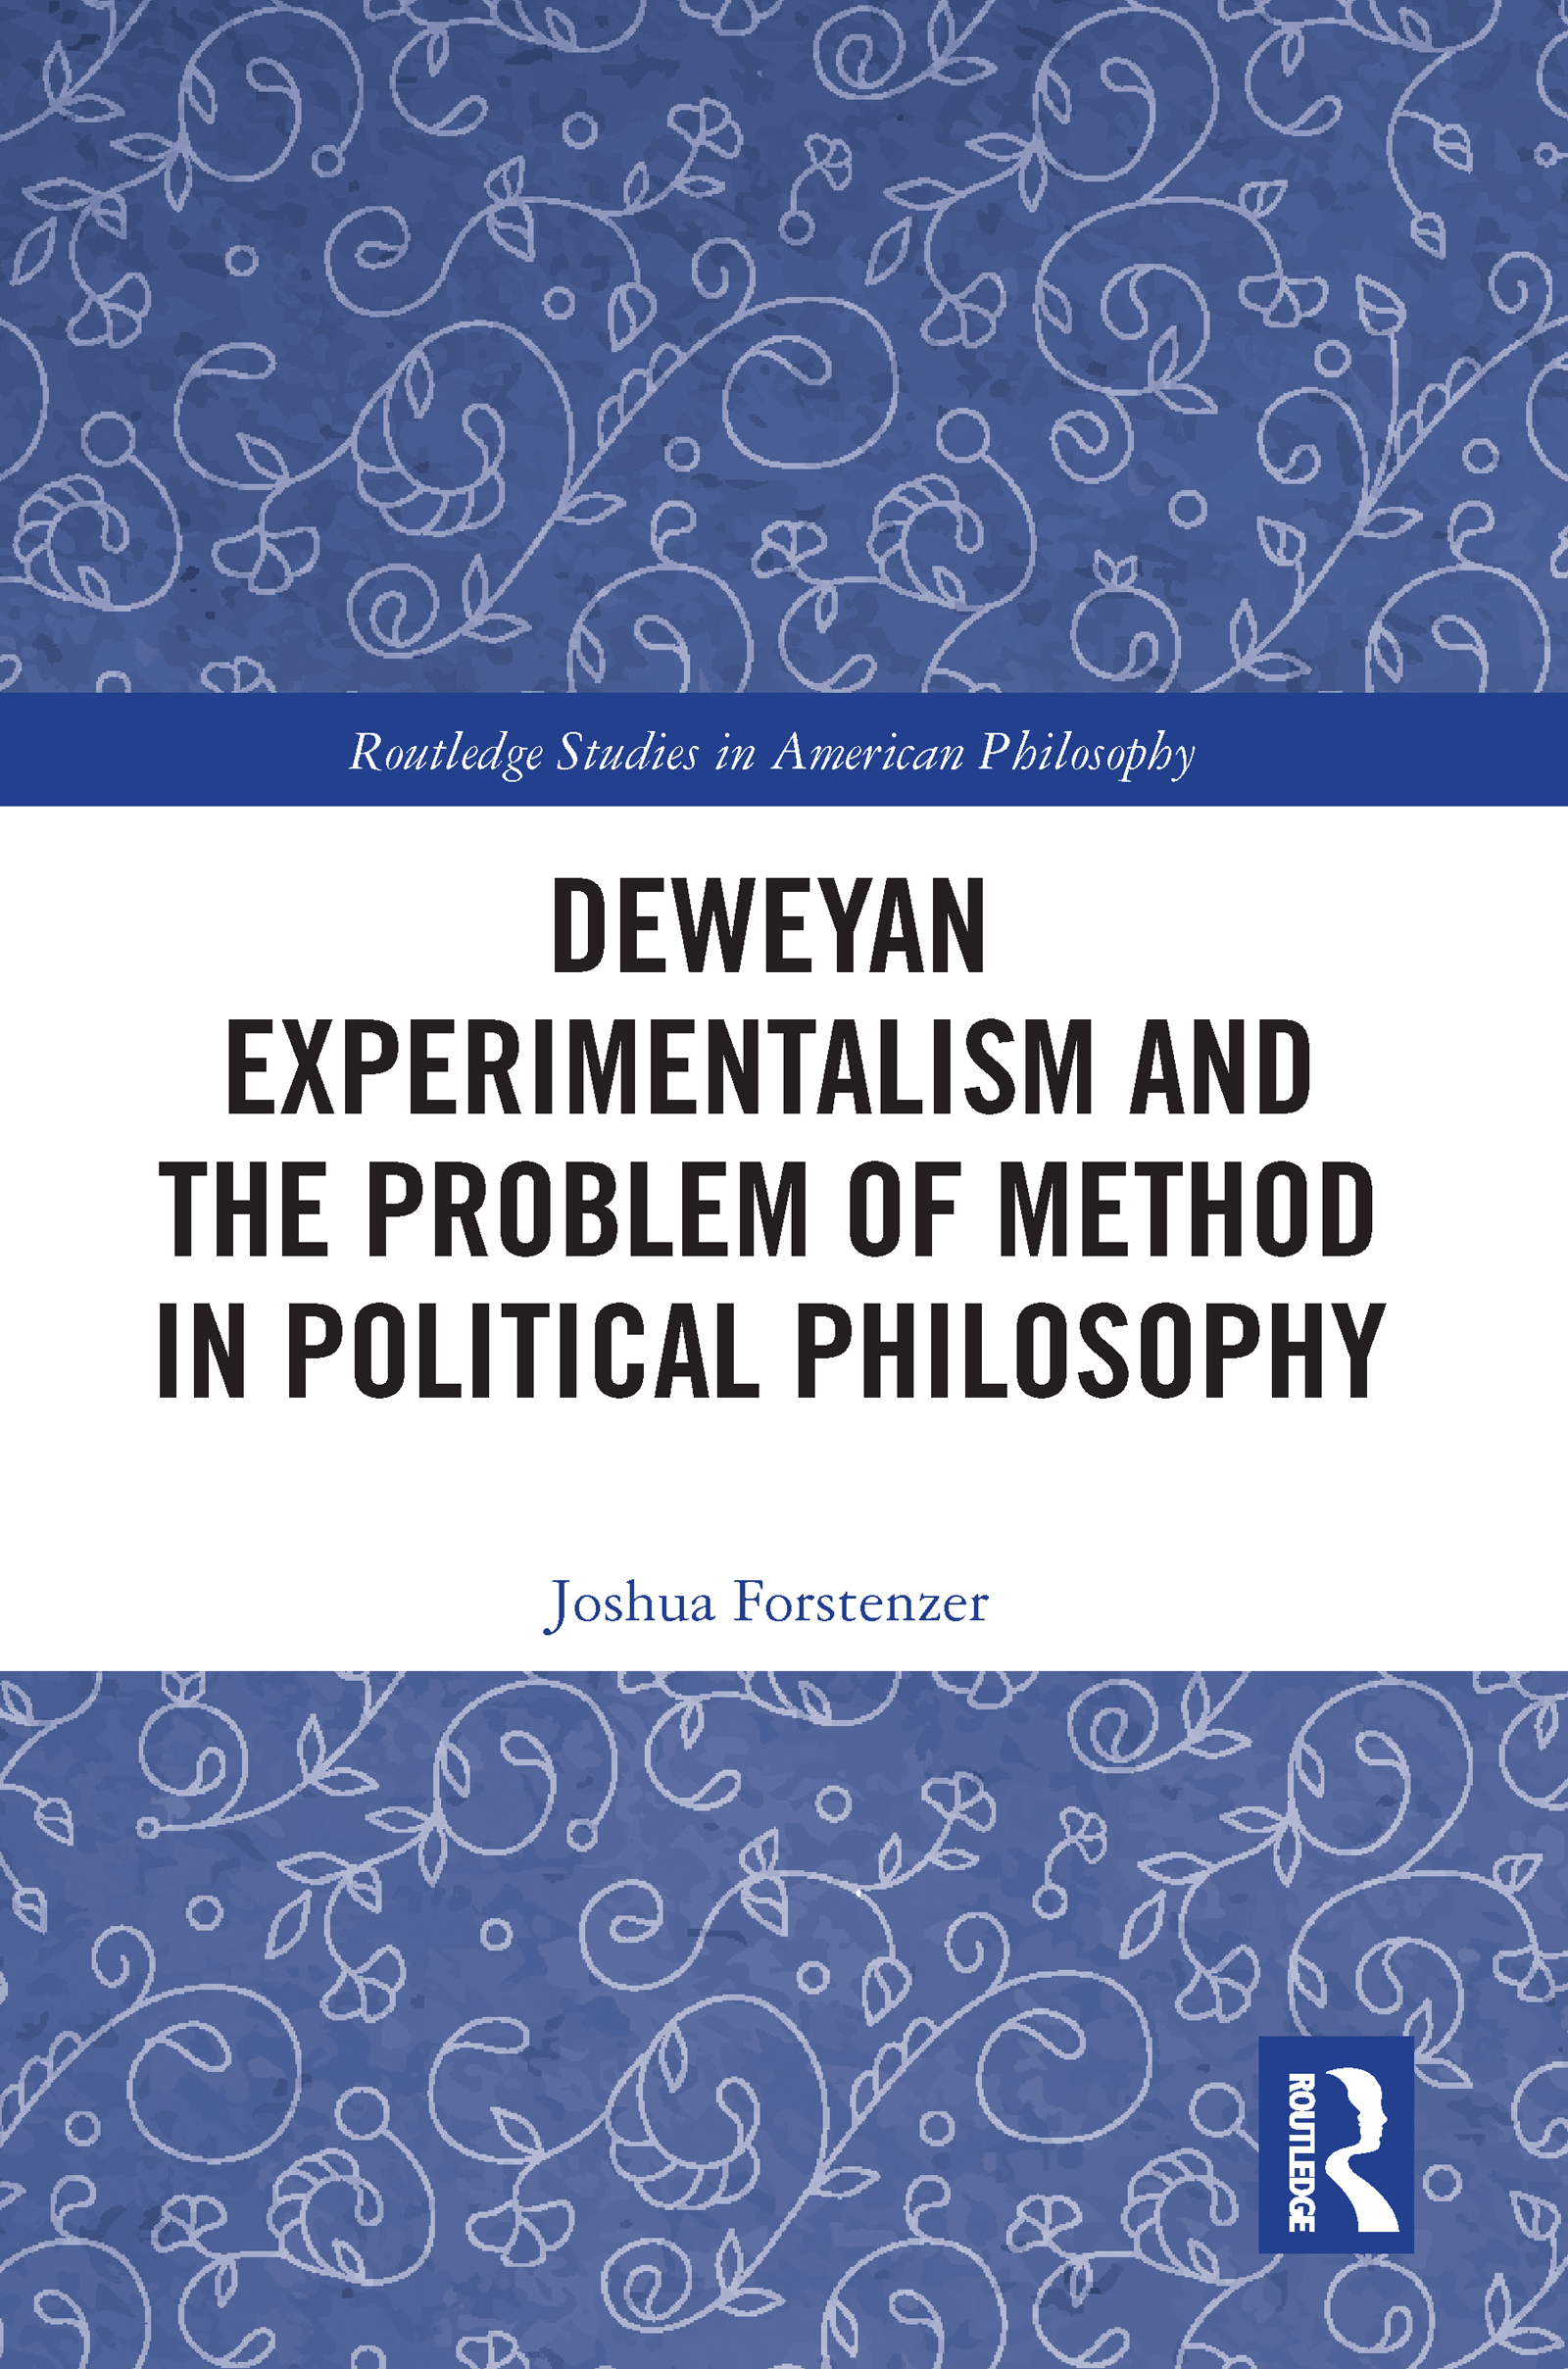 Deweyan Experimentalism and the Problem of Method in Political Philosophy